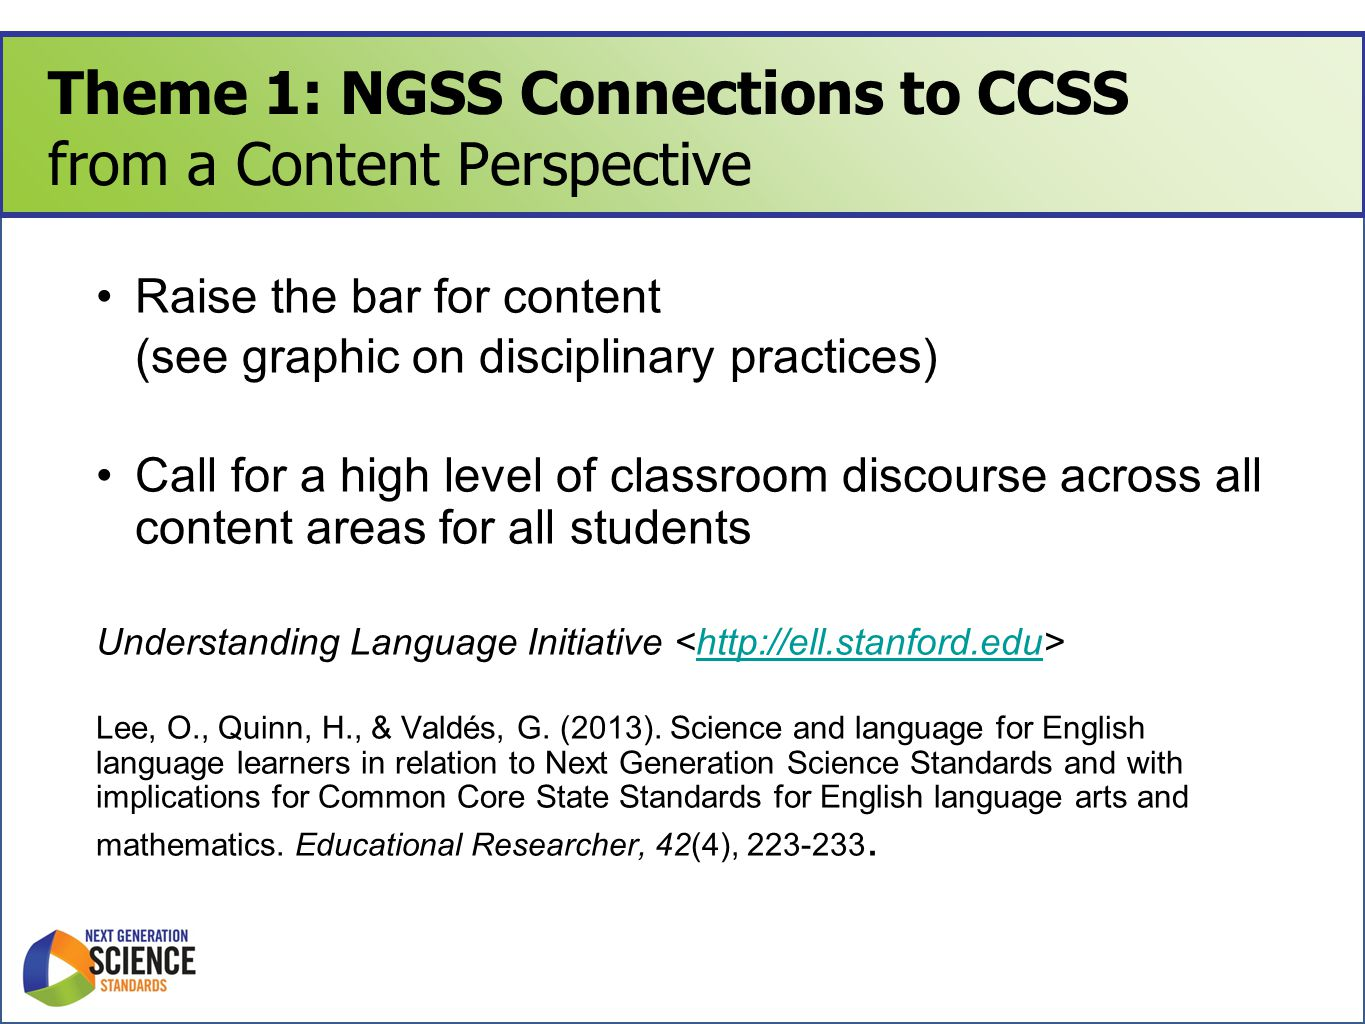 Theme 1: NGSS Connections to CCSS from a Content Perspective Raise the bar for content (see graphic on disciplinary practices) Call for a high level of classroom discourse across all content areas for all students Understanding Language Initiative http://ell.stanford.edu Lee, O., Quinn, H., & Valdés, G.